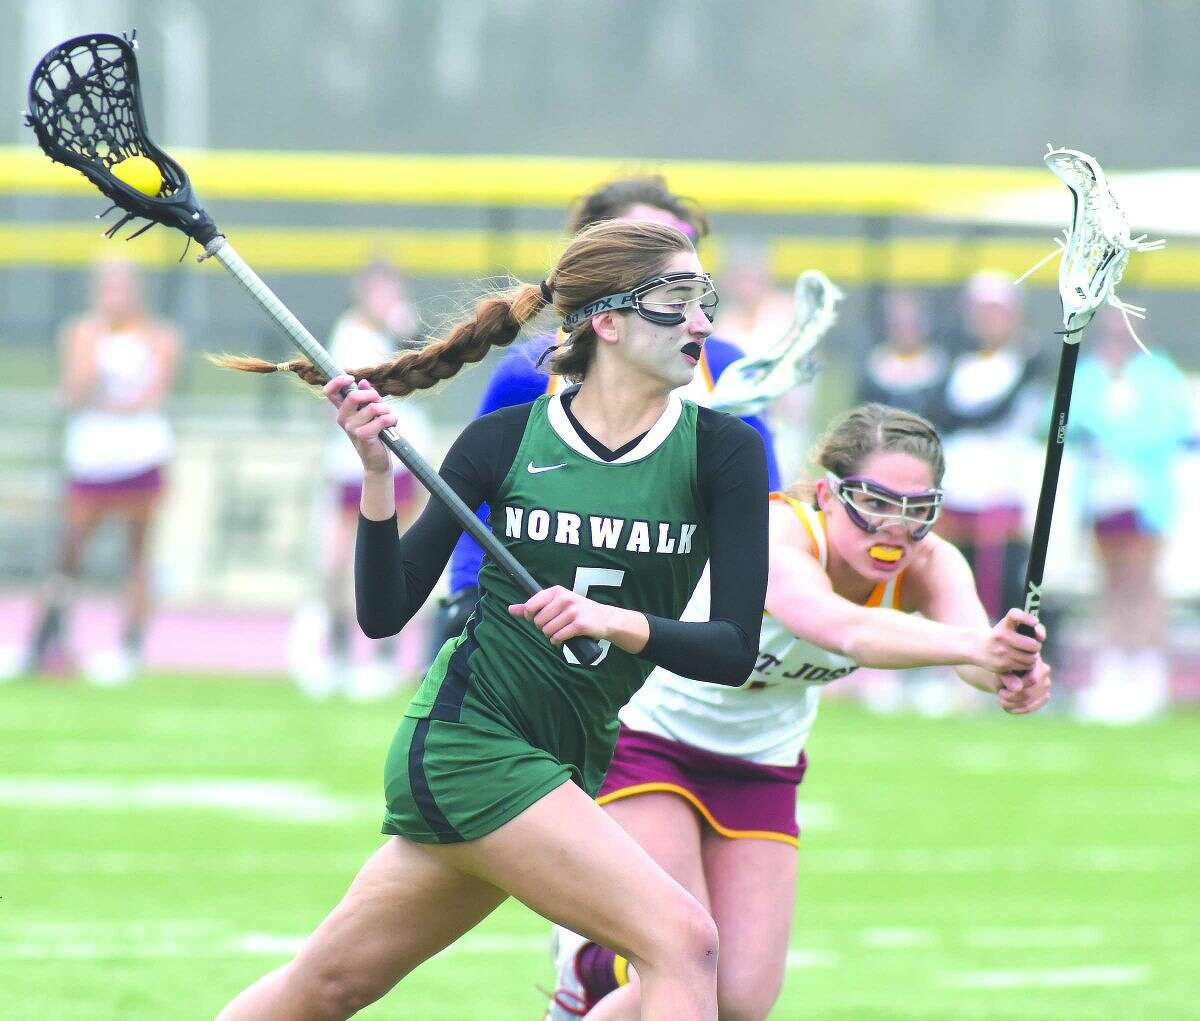 Norwalk's Hannah Froelich, left, fires off a shot during Friday's FCIAC girls lacrosse game against St. Joseph. (Hour photo/John Nash)